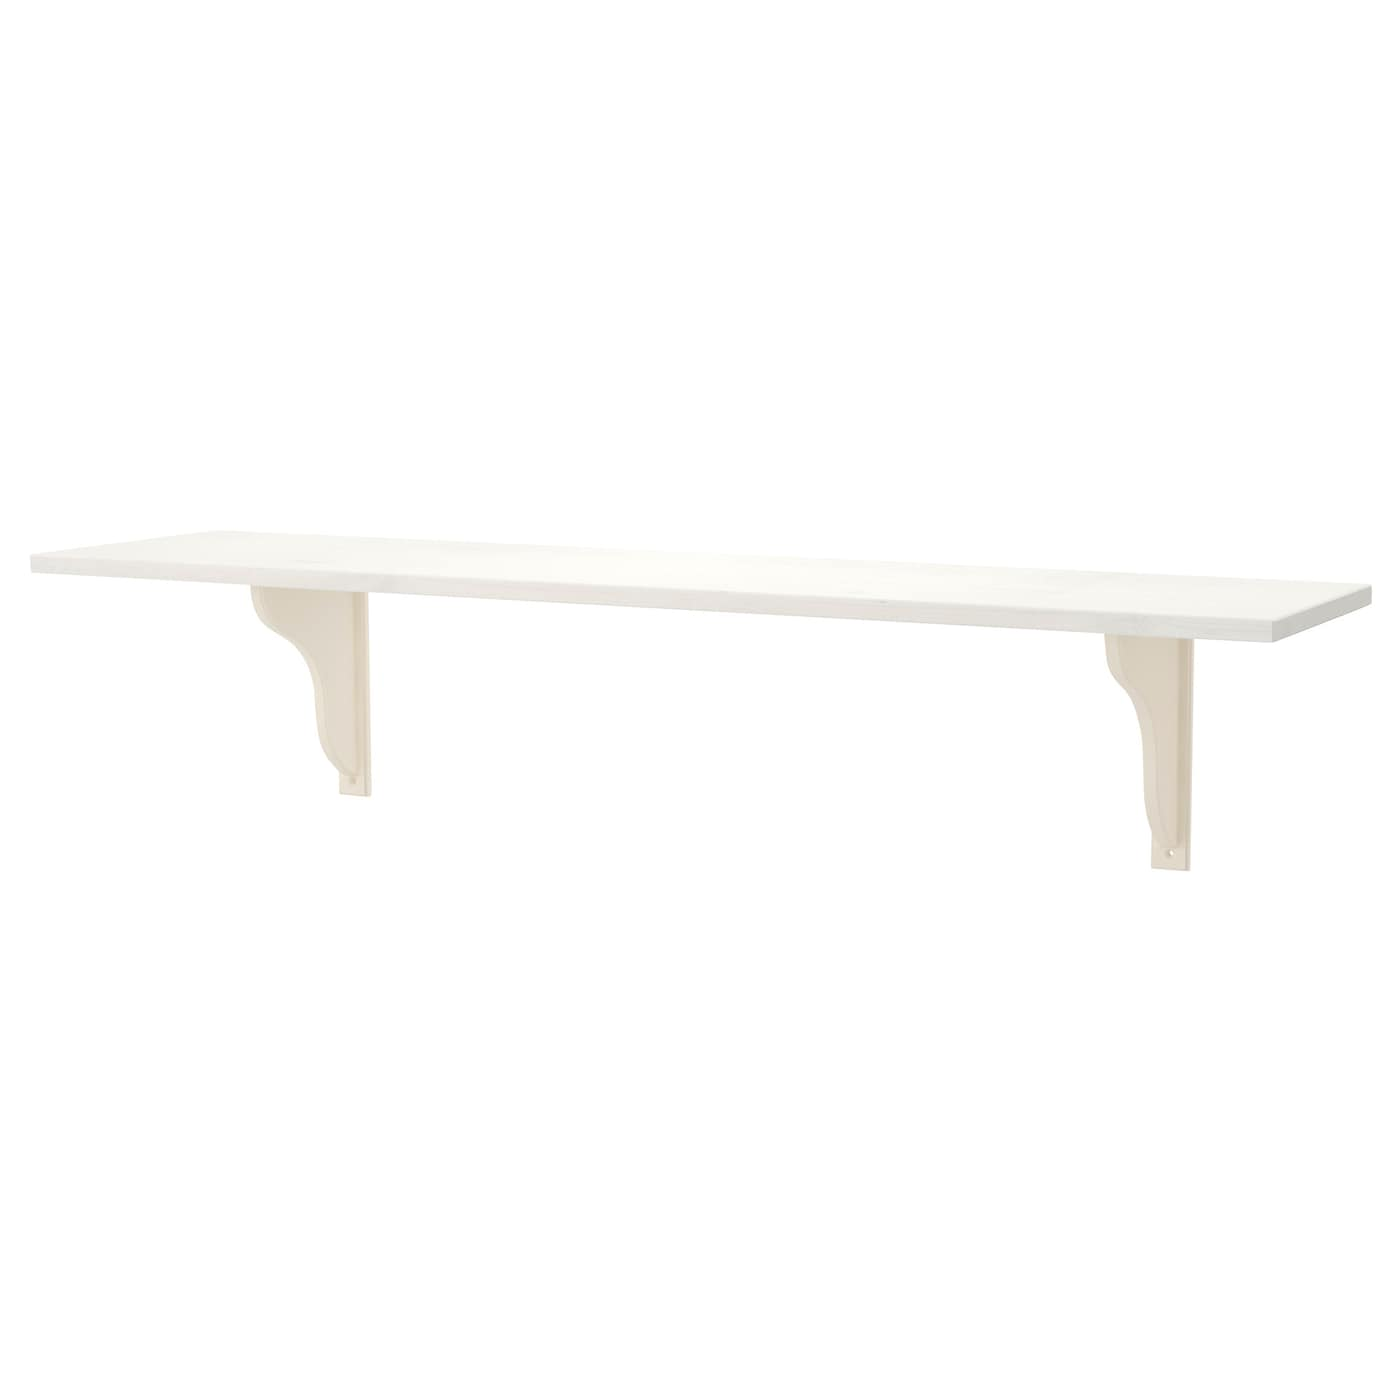 IKEA EKBY HENSVIK/EKBY HEMNES wall shelf Solid wood is a durable natural material.